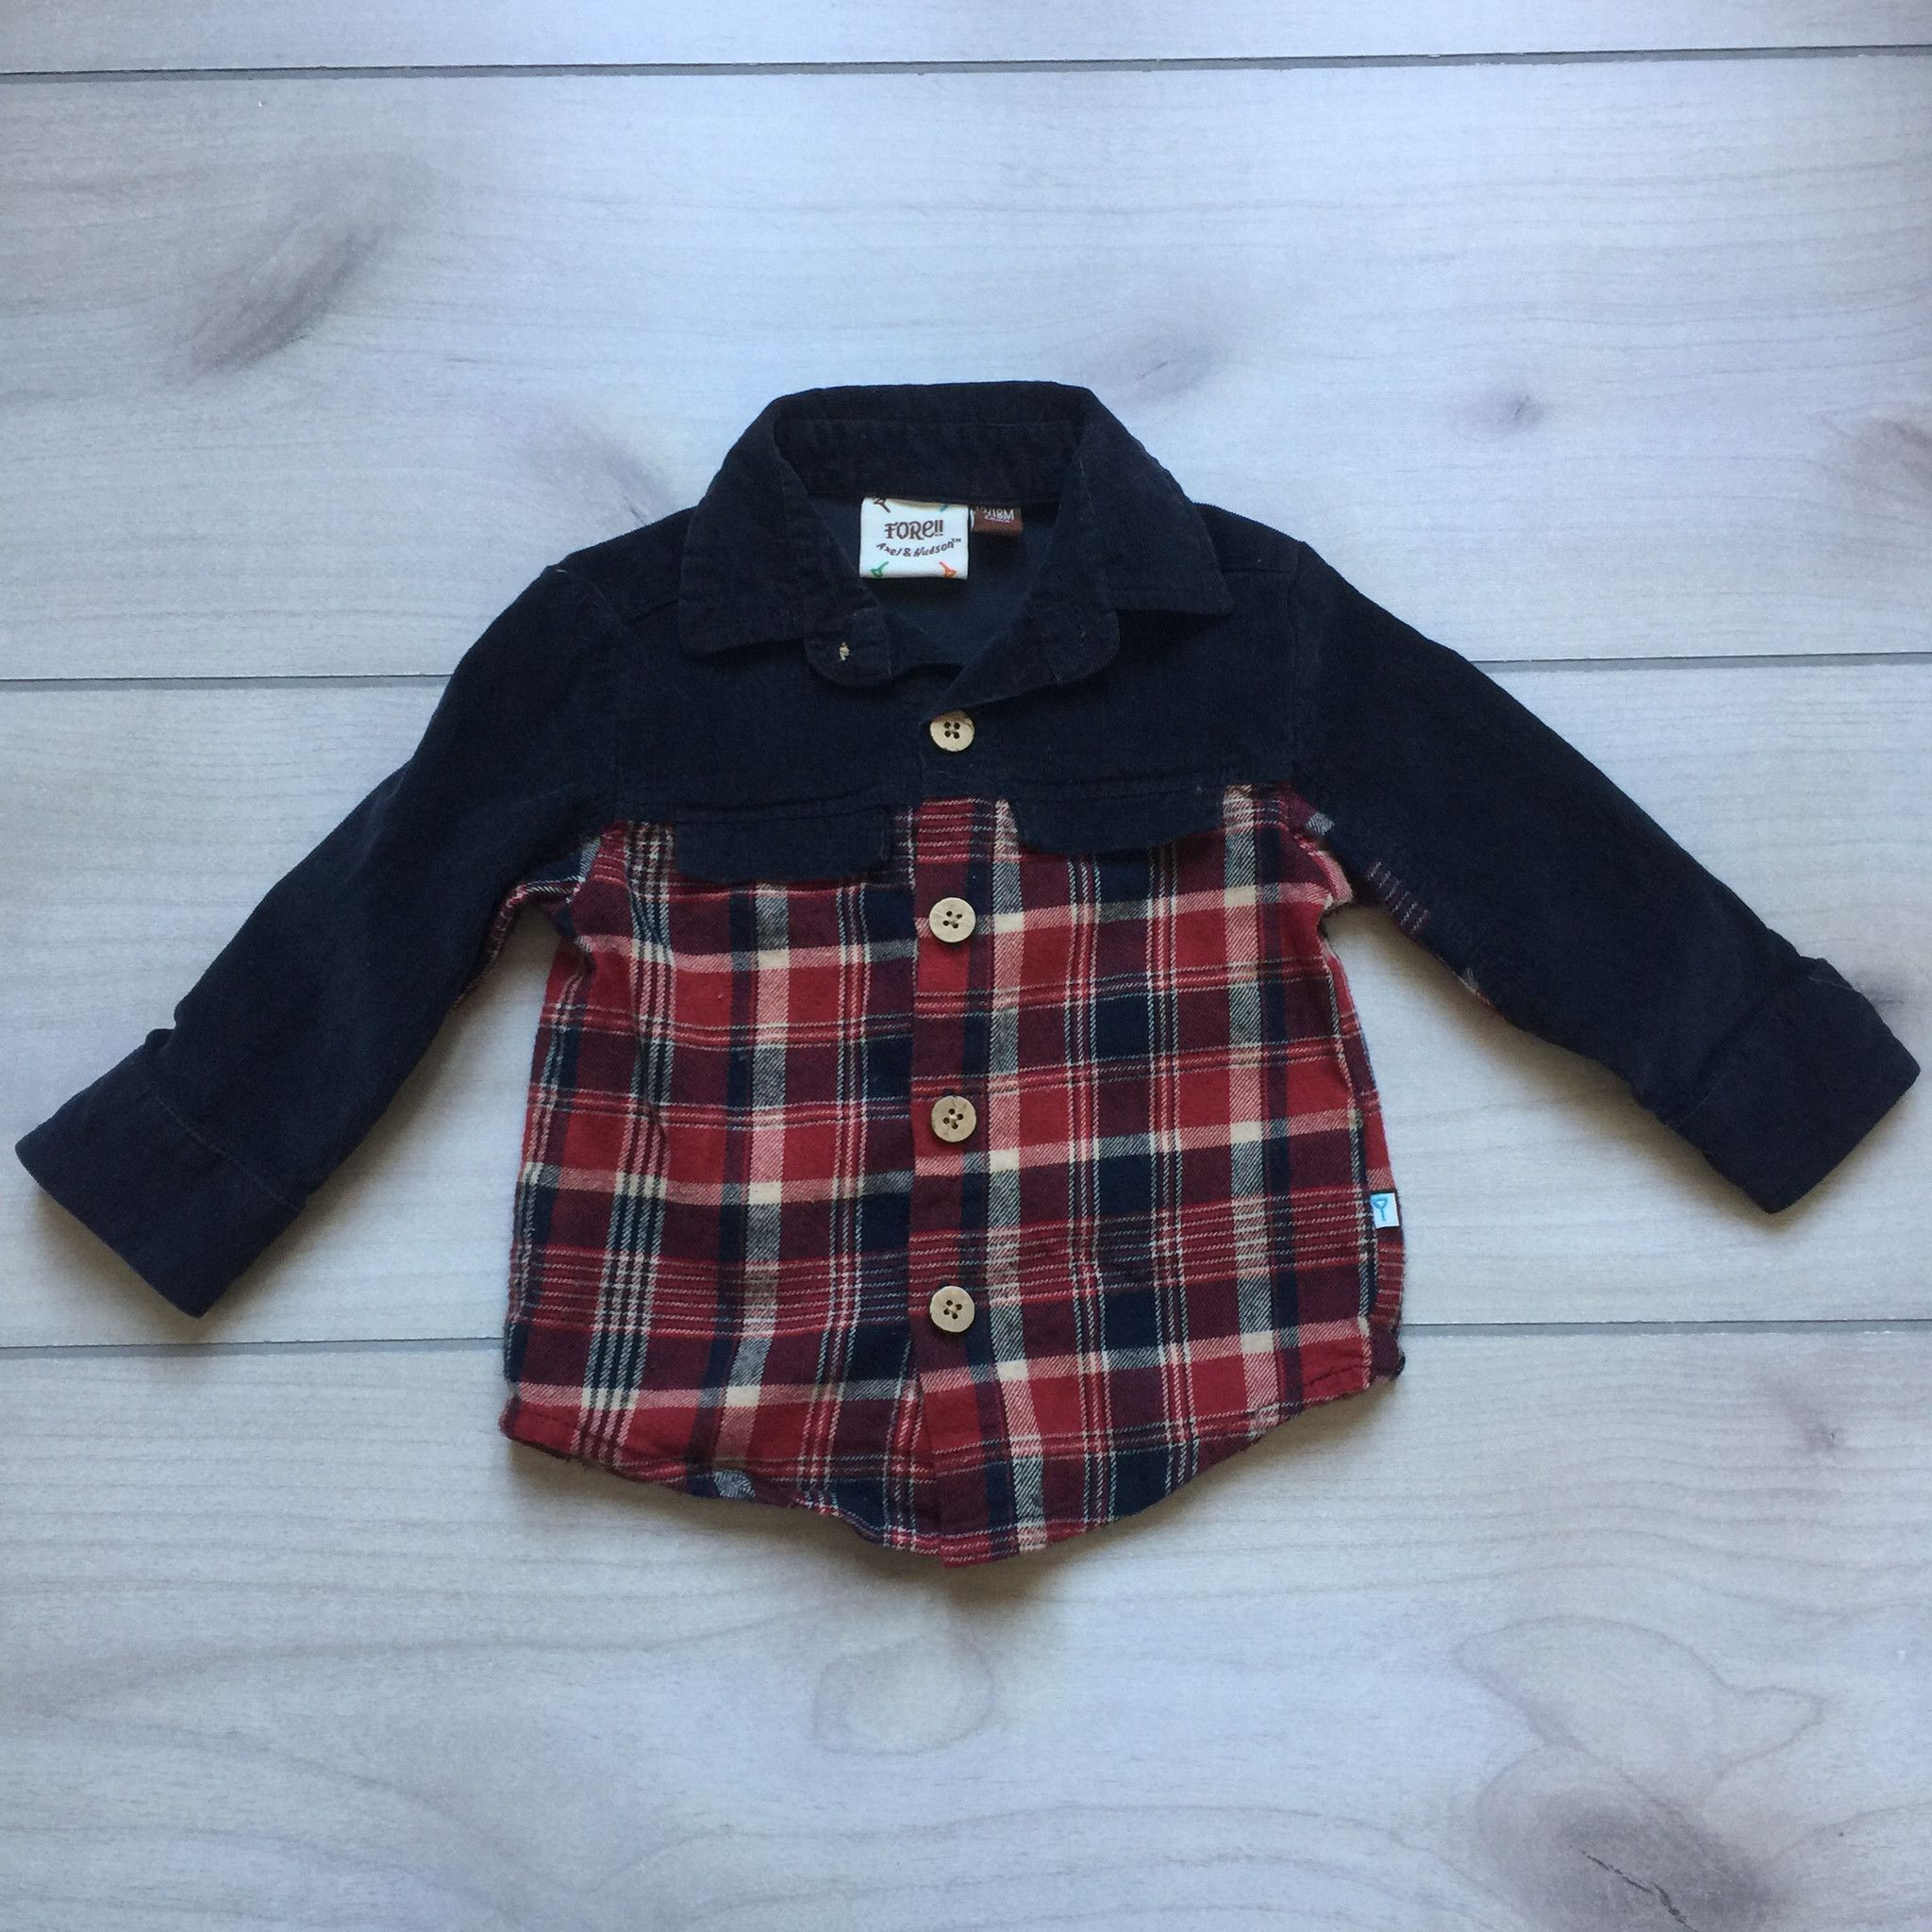 Flannel jacket with elbow patches  FORE Axel u Hudson Flannel Shirt  Products  Pinterest  Flannel